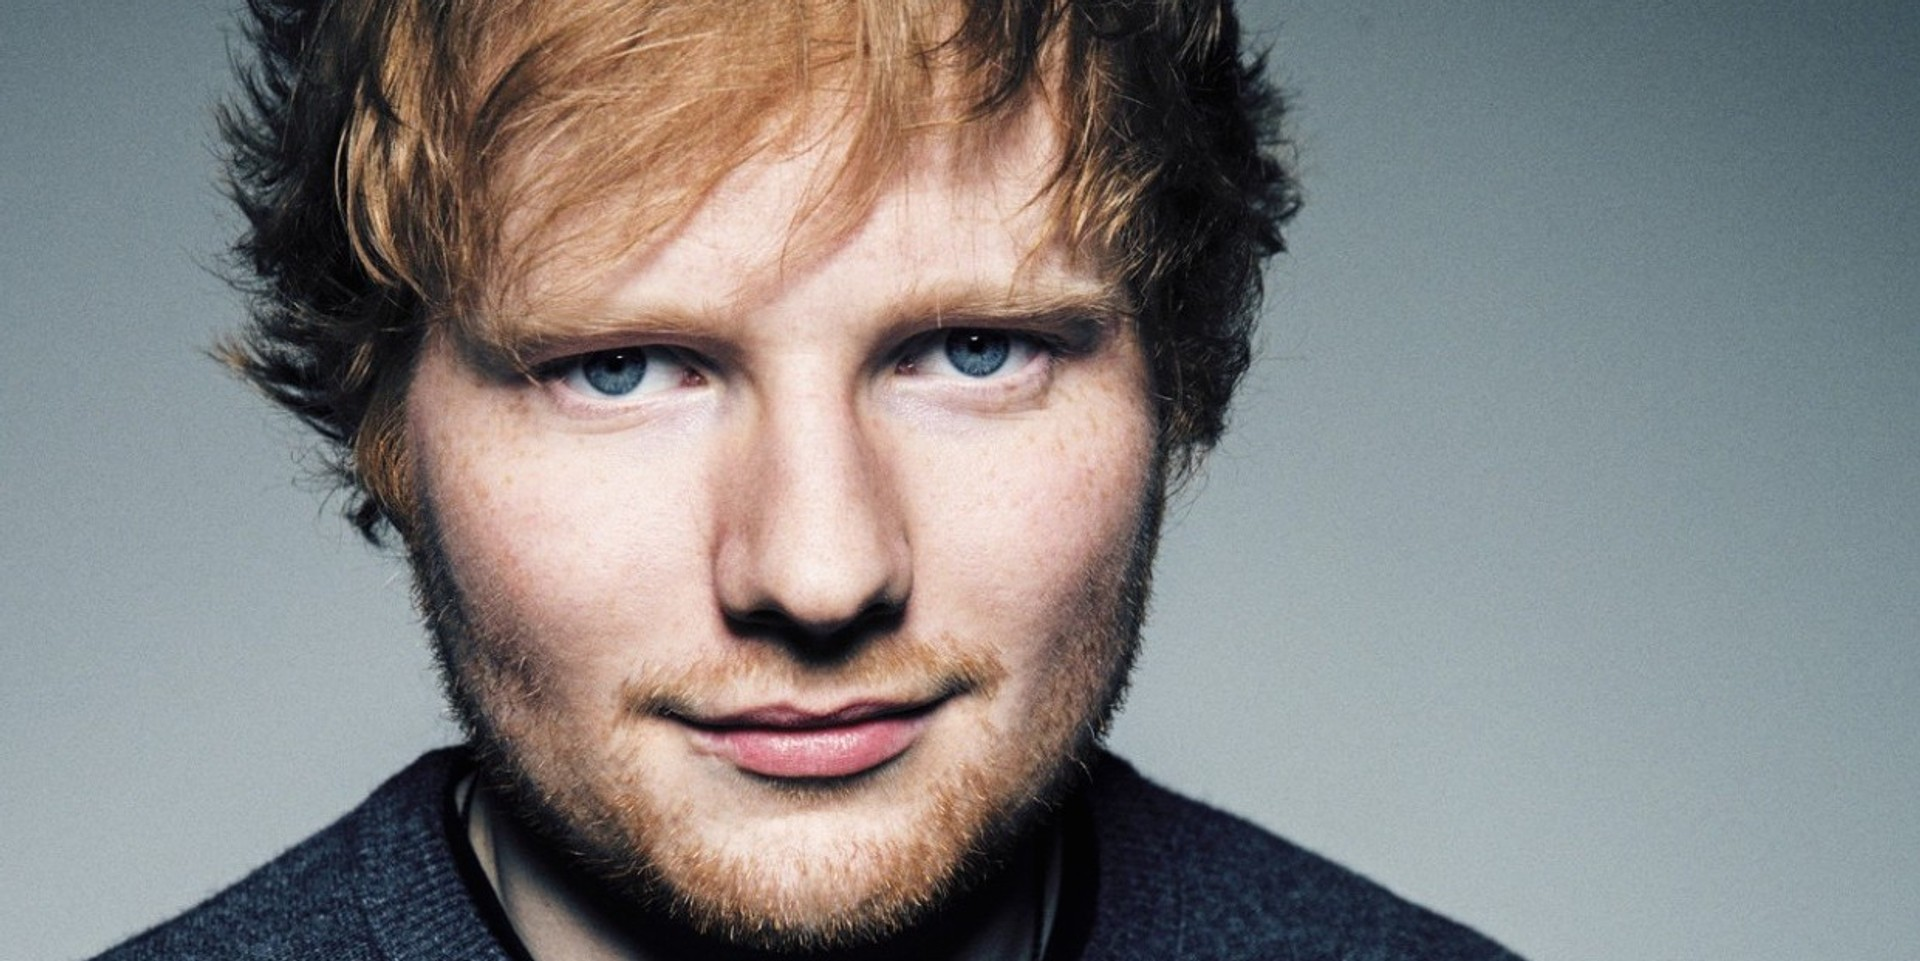 Ed Sheeran adds second show in Singapore, first show sold out in under an hour